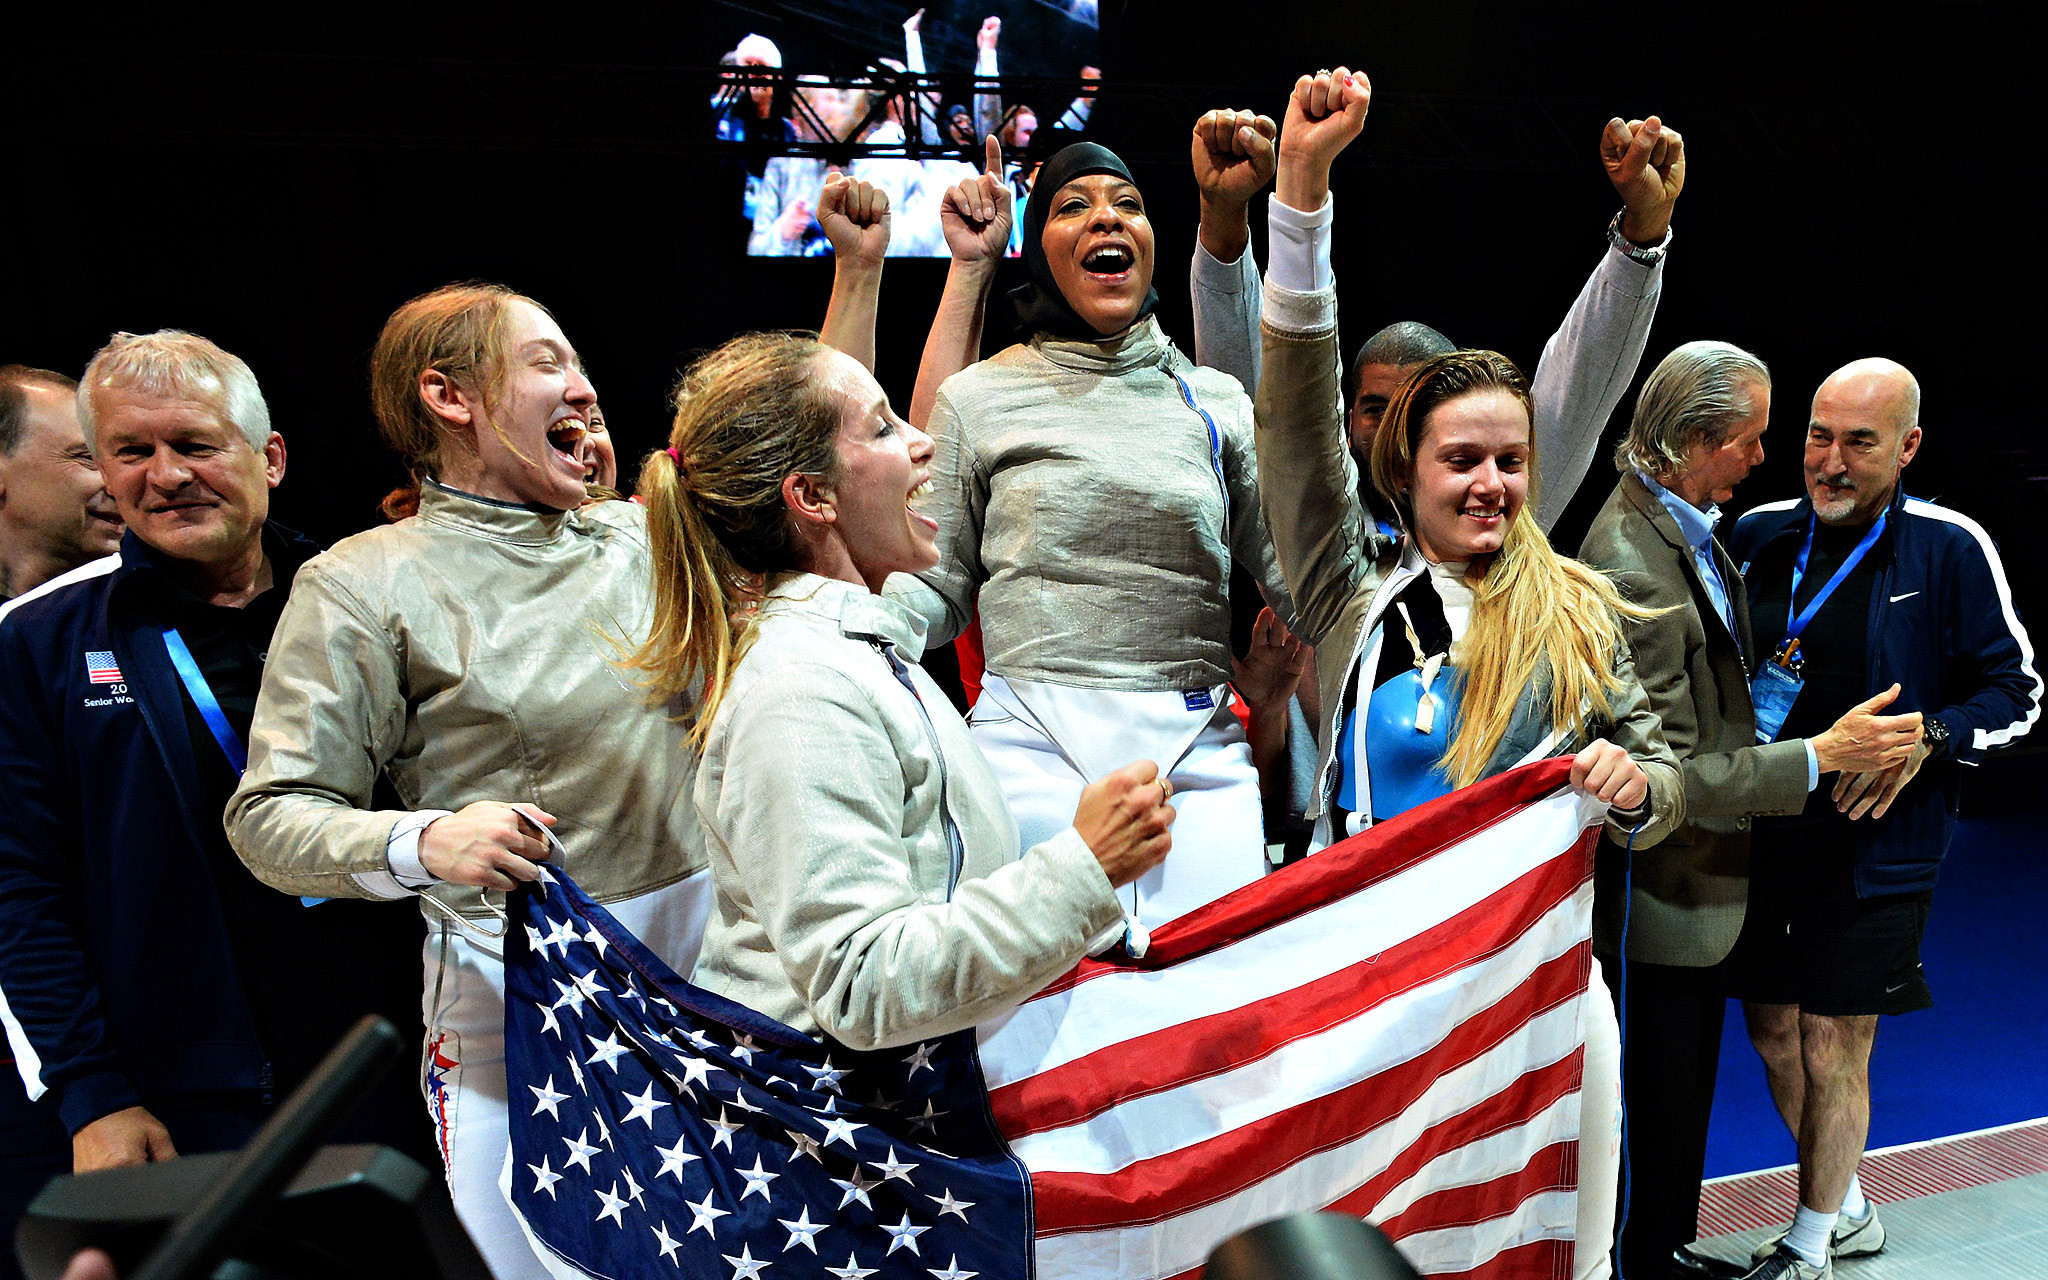 Members of the United States women's fencing team celebrate after winning the women's team sabre final at the 2014 world fencing championships in Kazan.